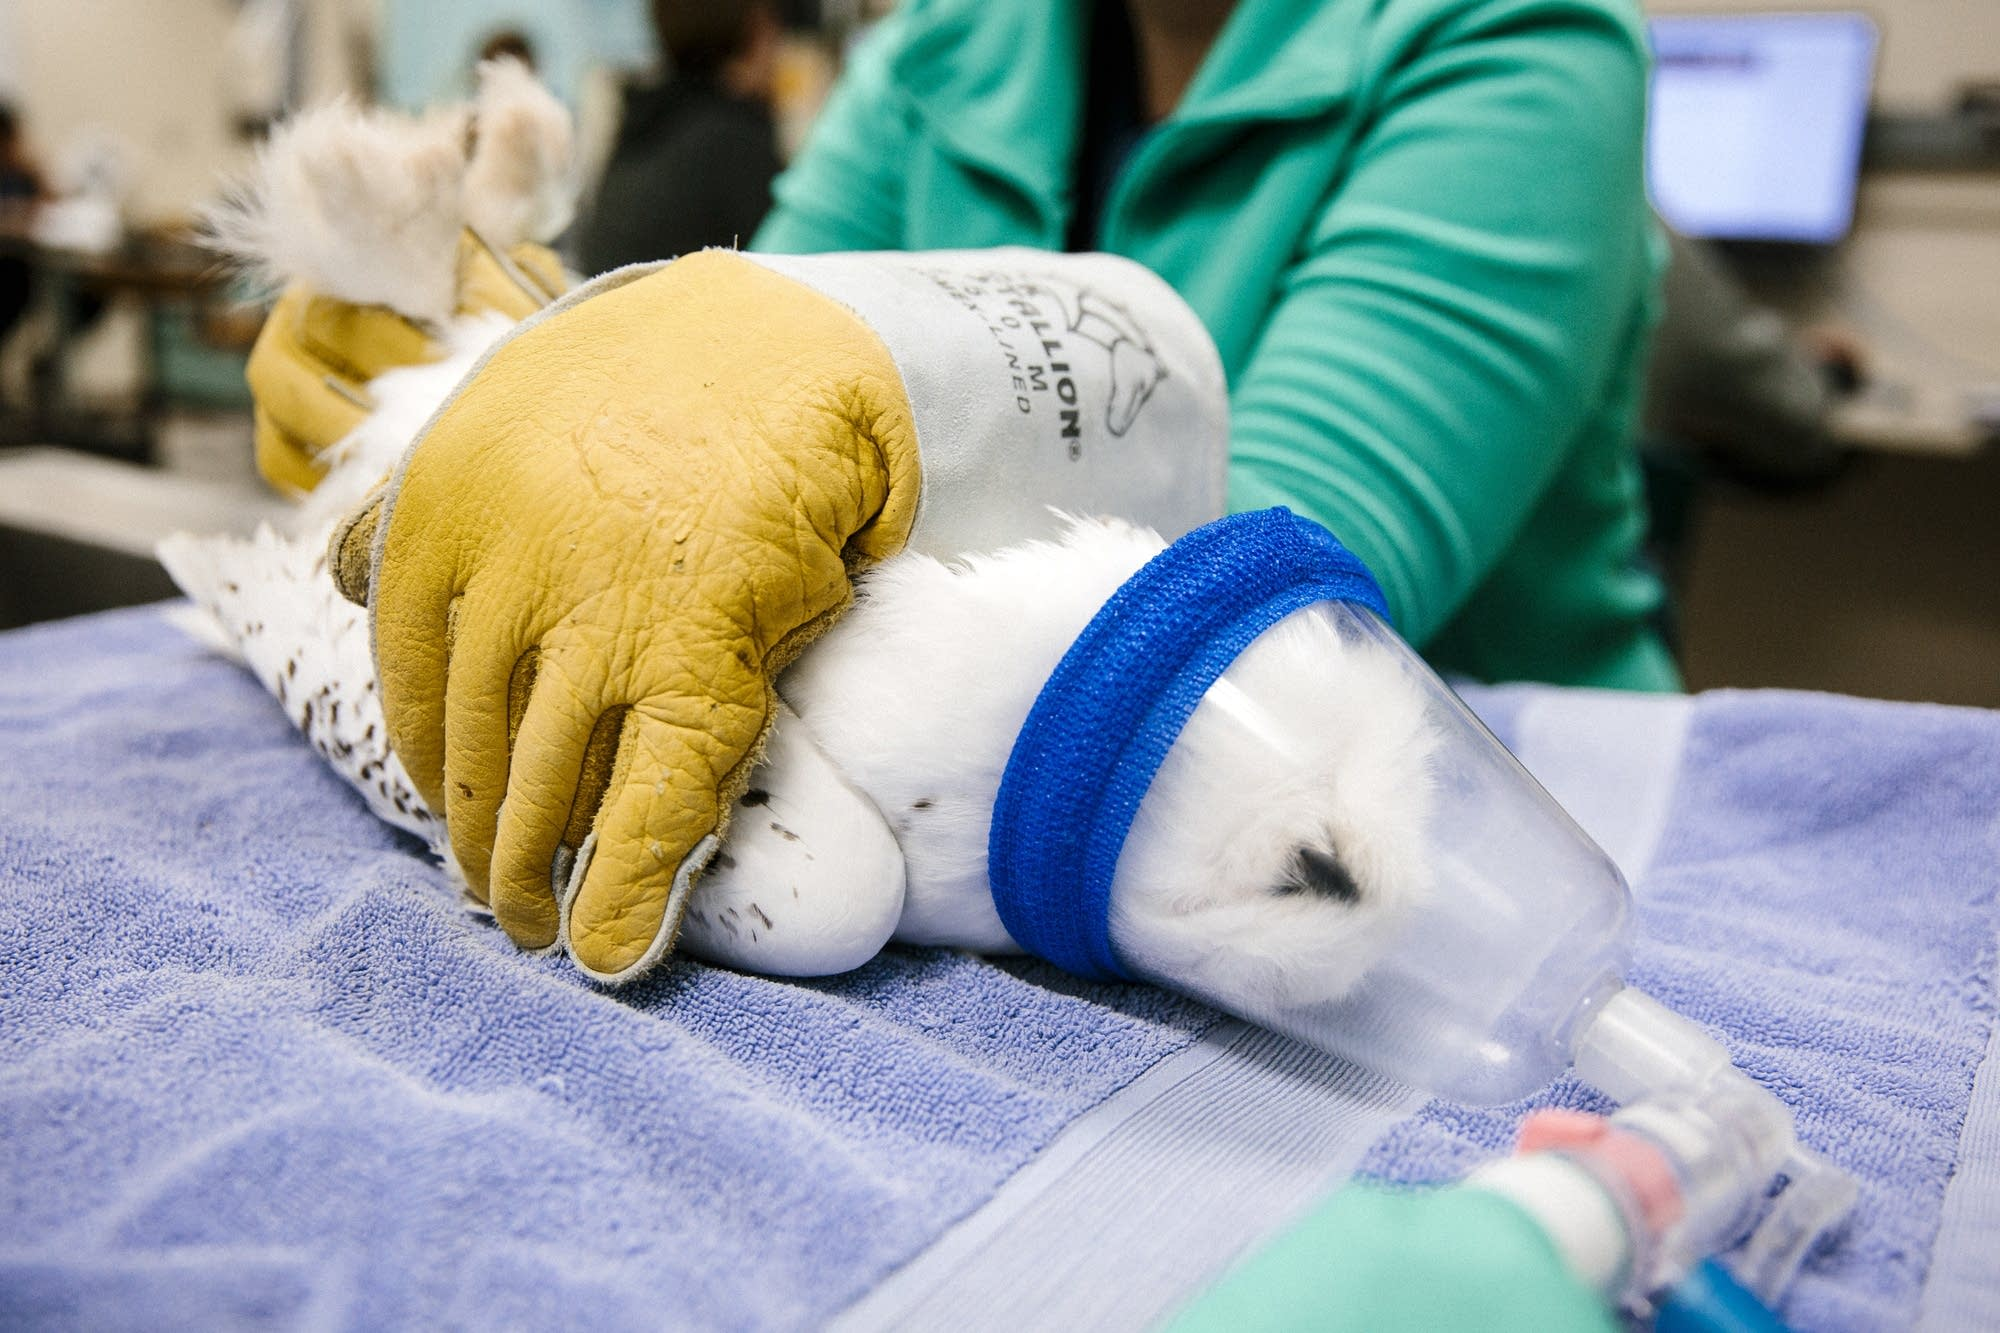 A snowy owl receives anesthesia for a check up.